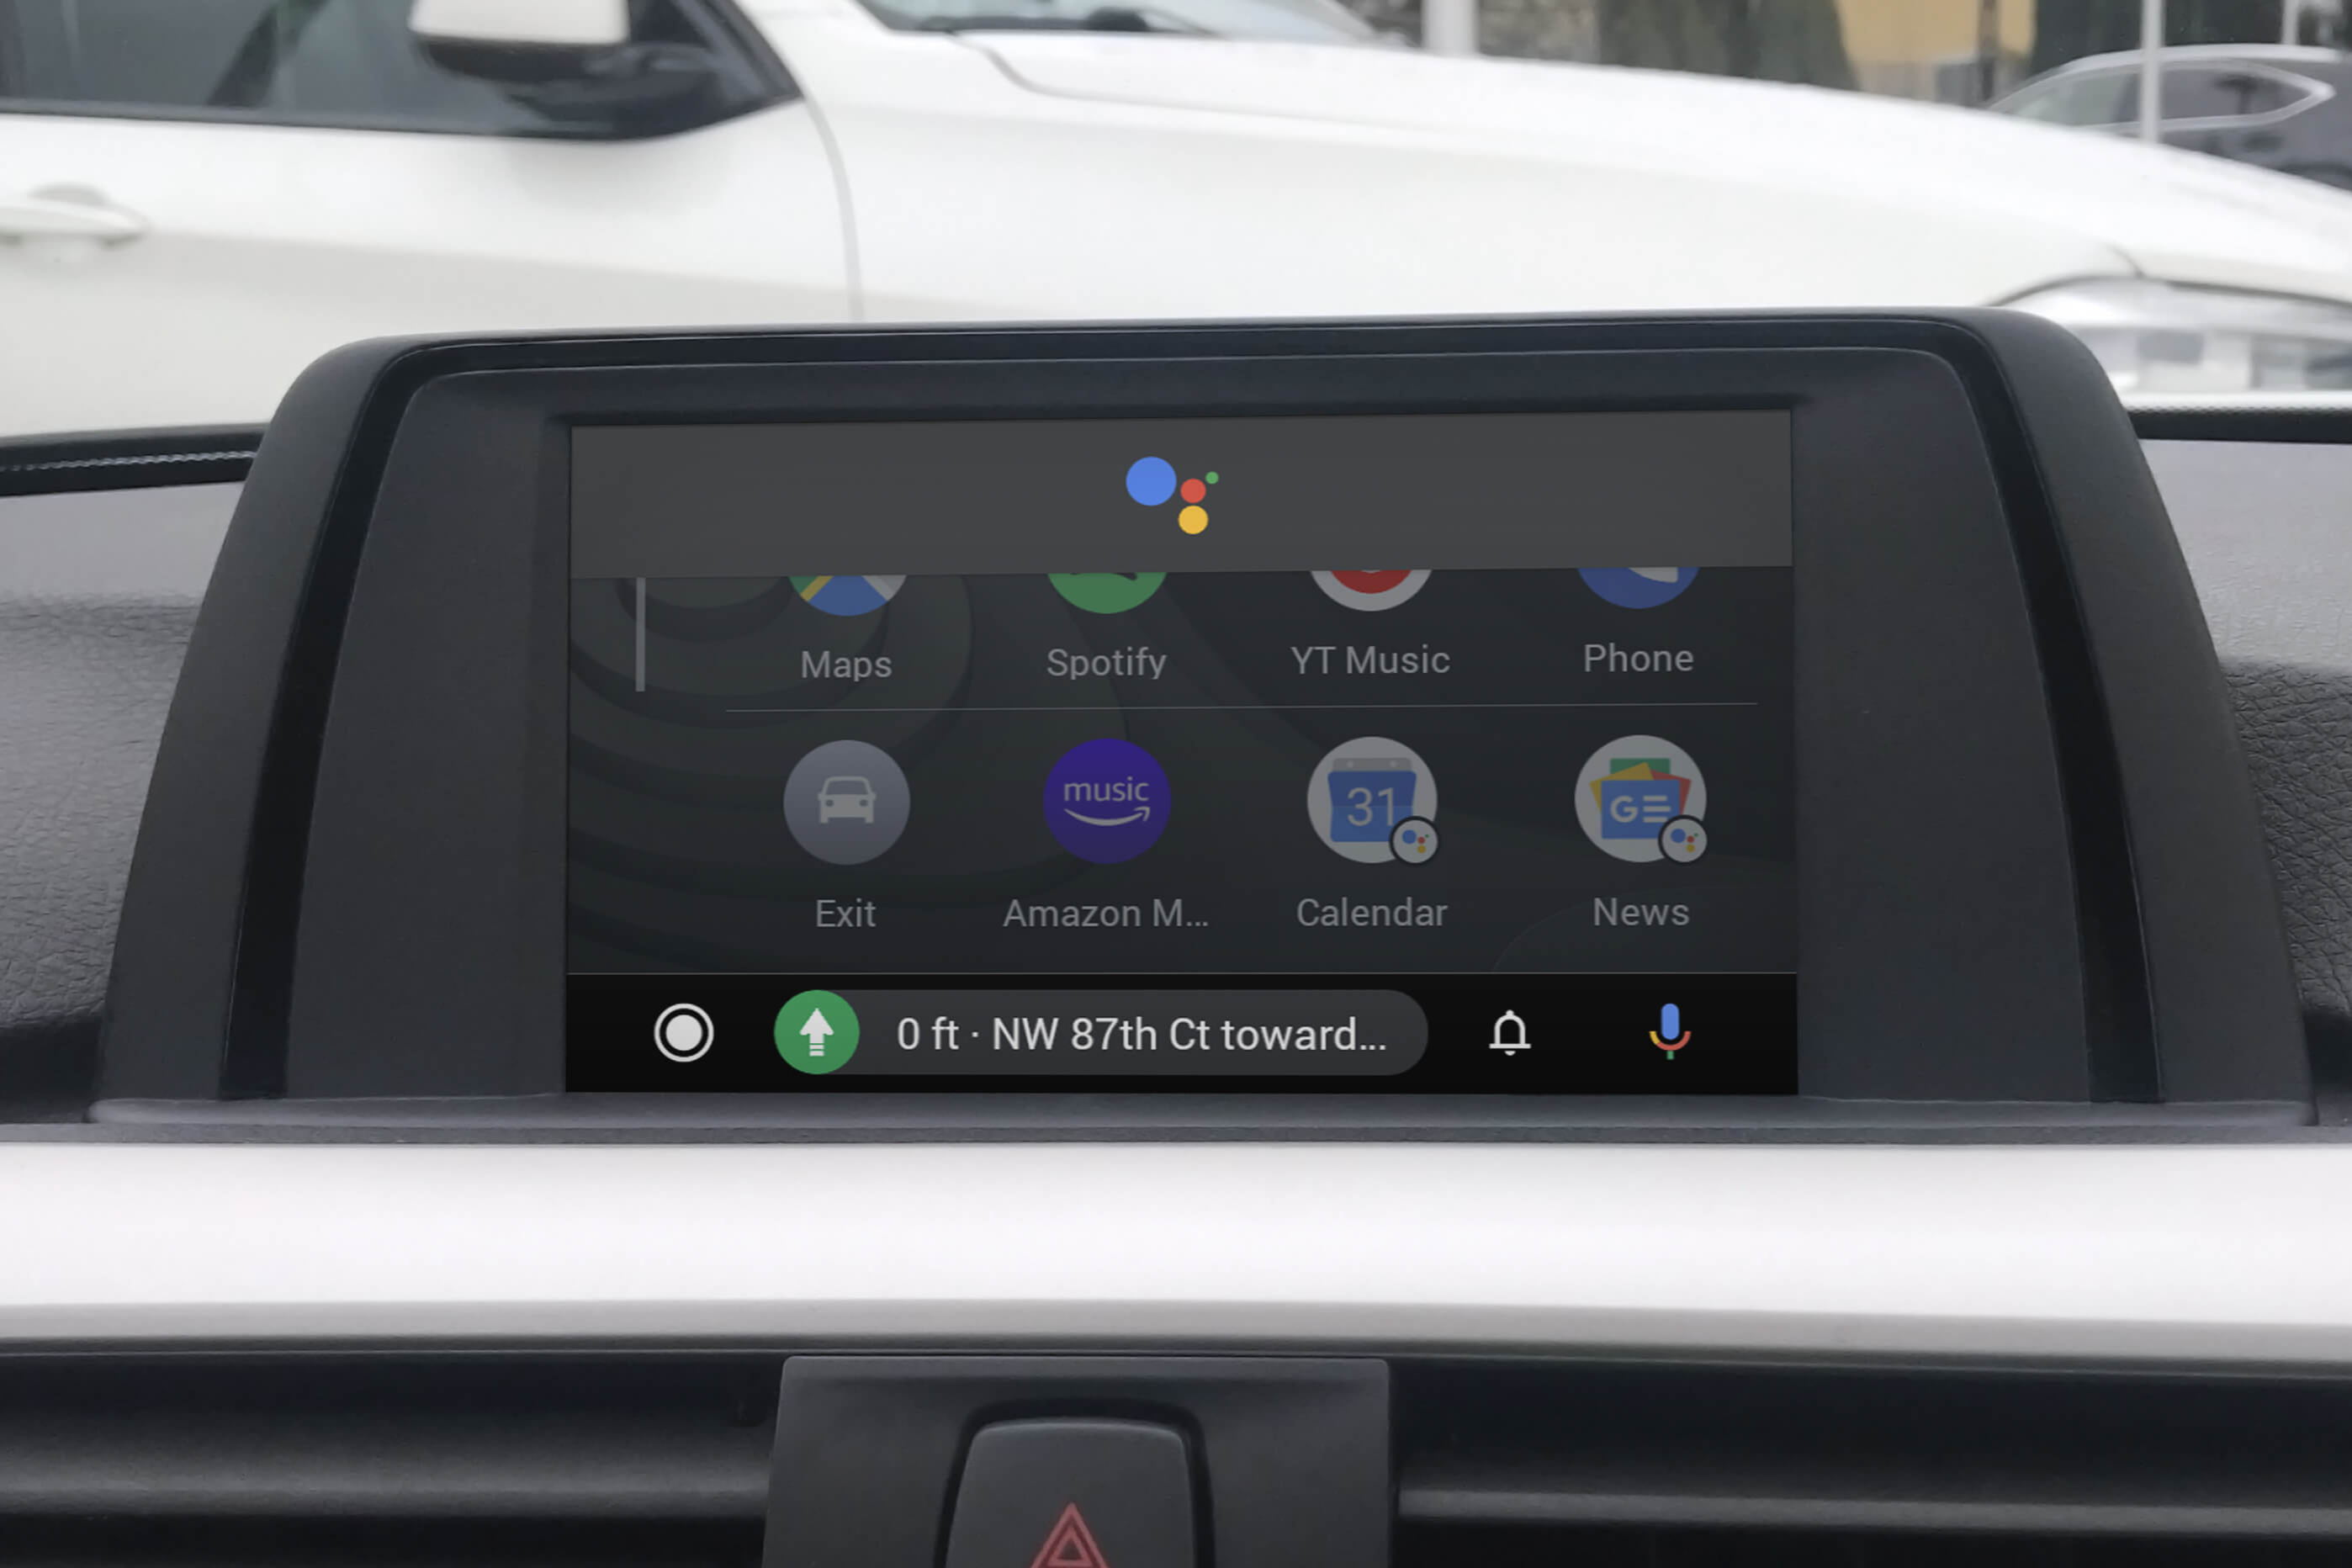 BMW Android Auto MMI Prime small screen Google assistant